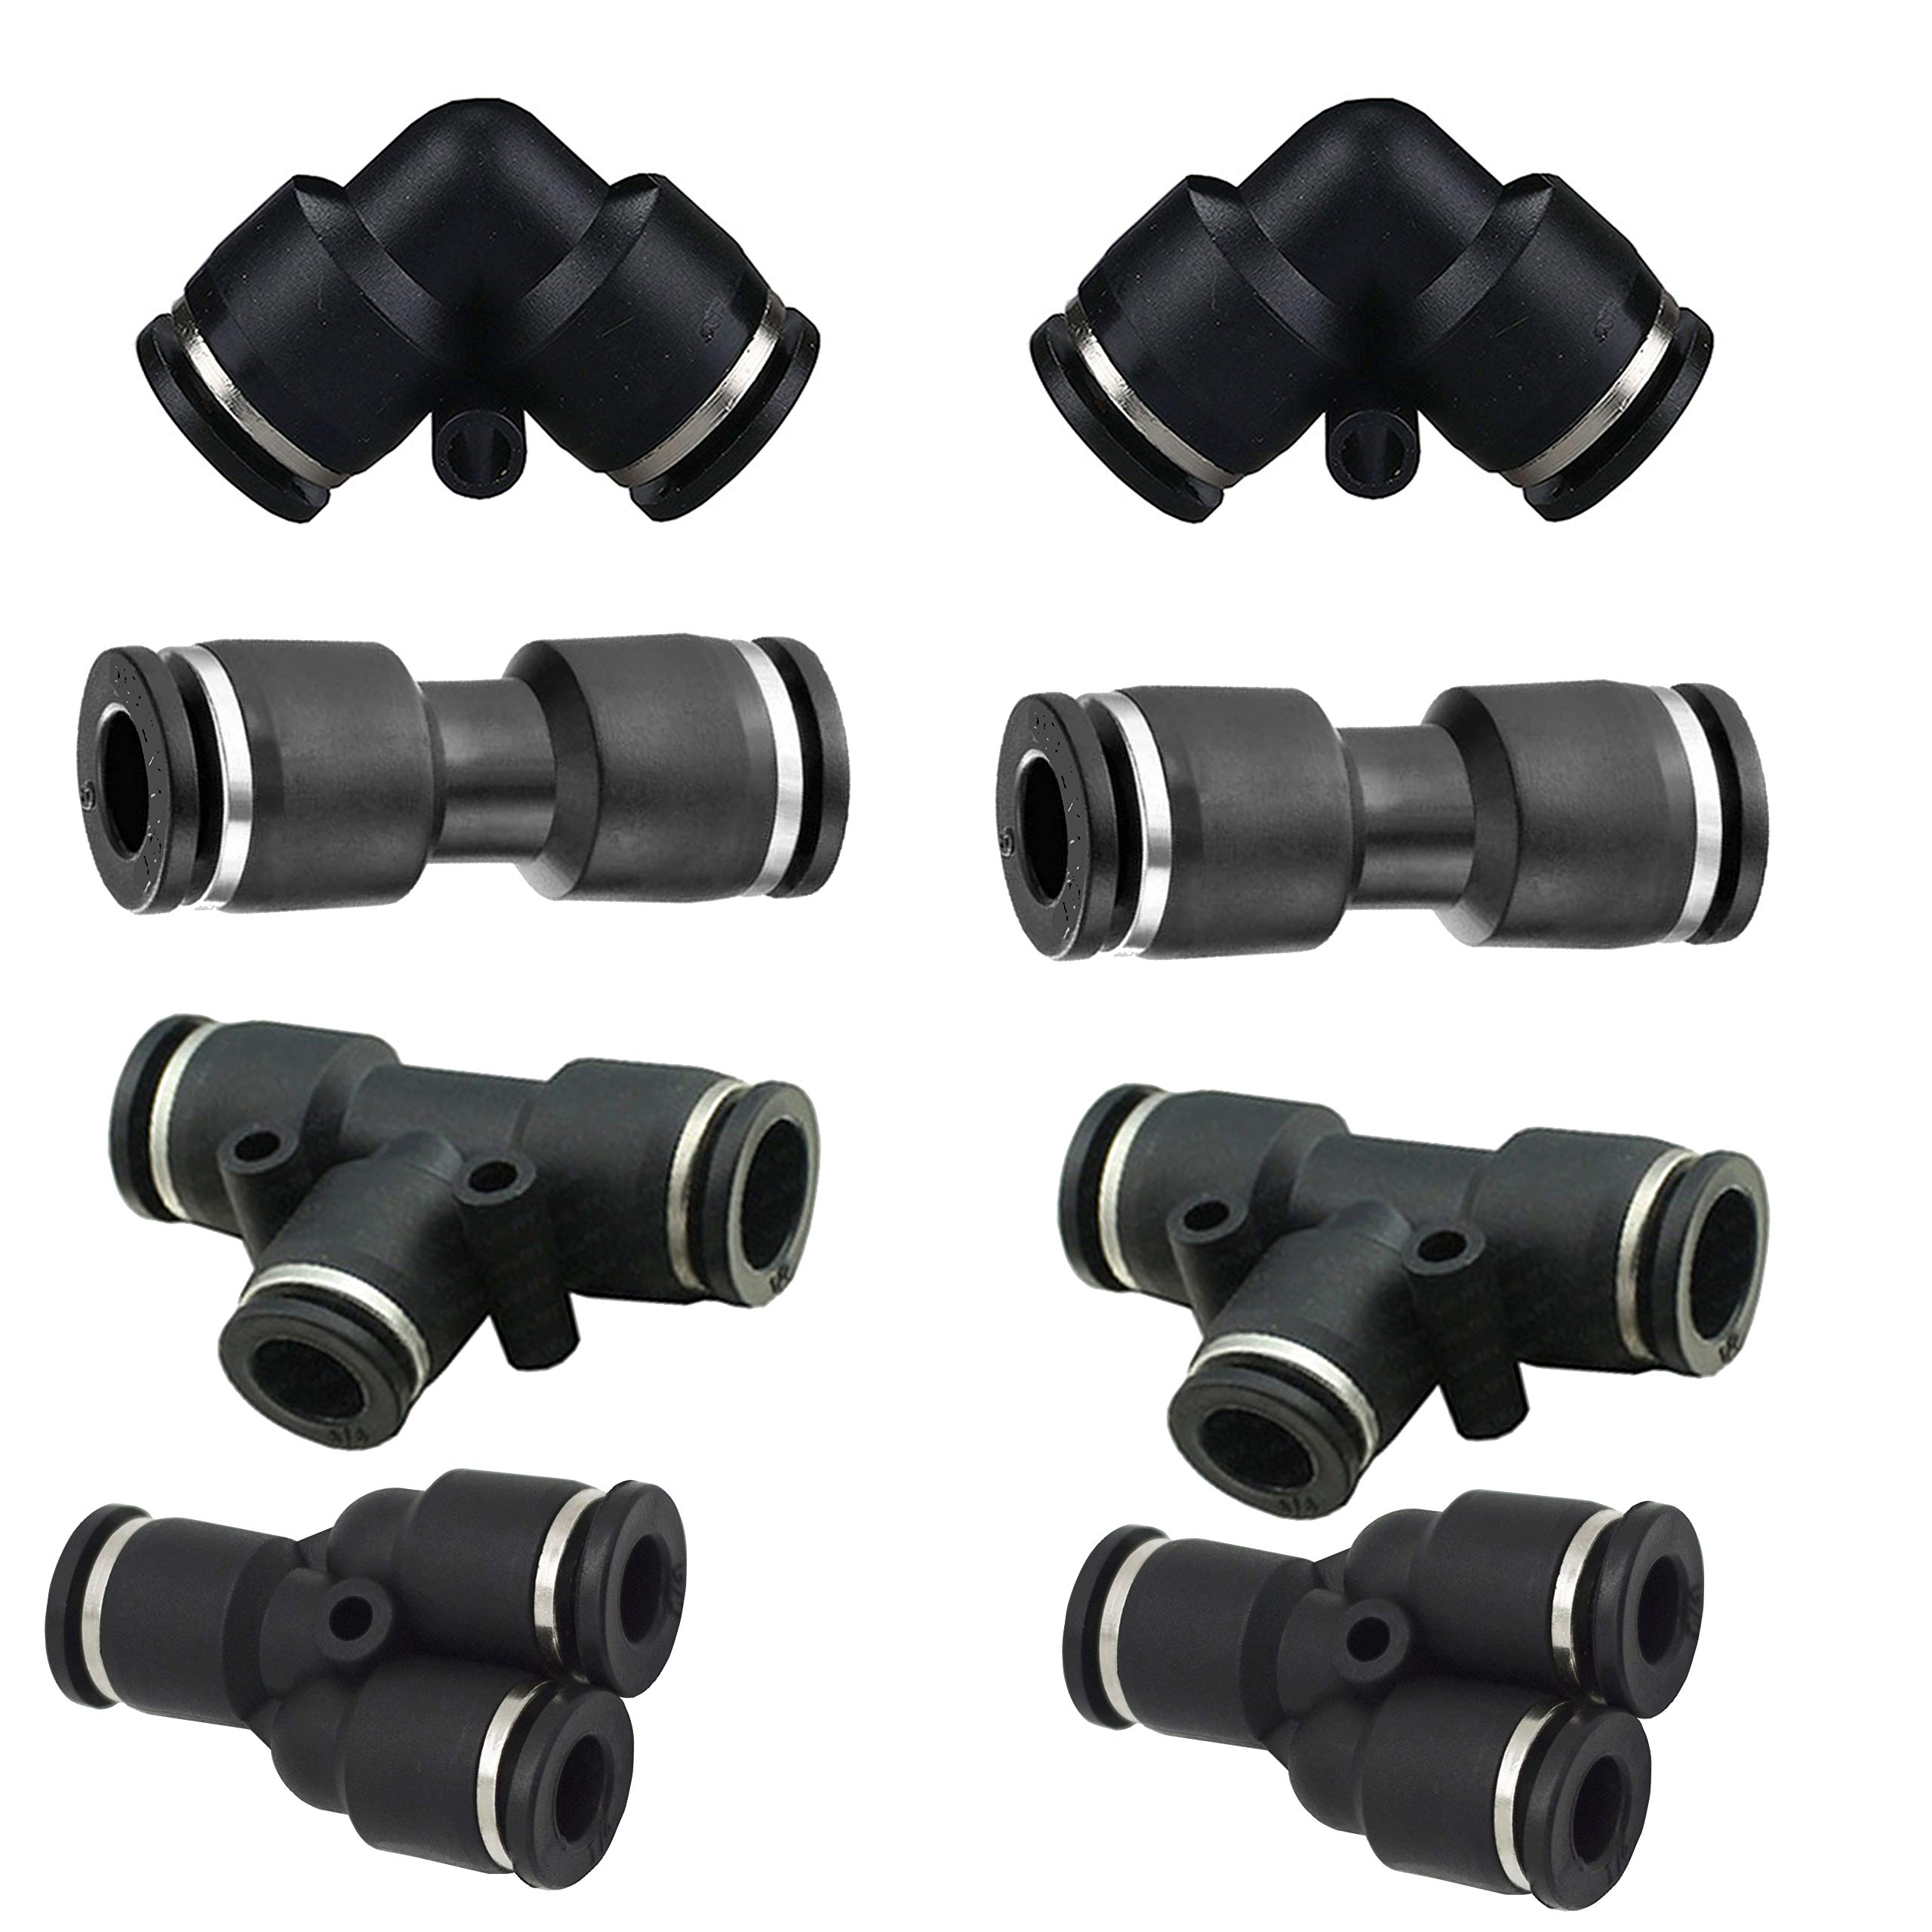 """1/4""""od Push to Connect Fittings Pneumatic Fittings kit 2 Spliters+2 Elbows+2 tee+2 Straight 8pack (1/4'' Combo)"""